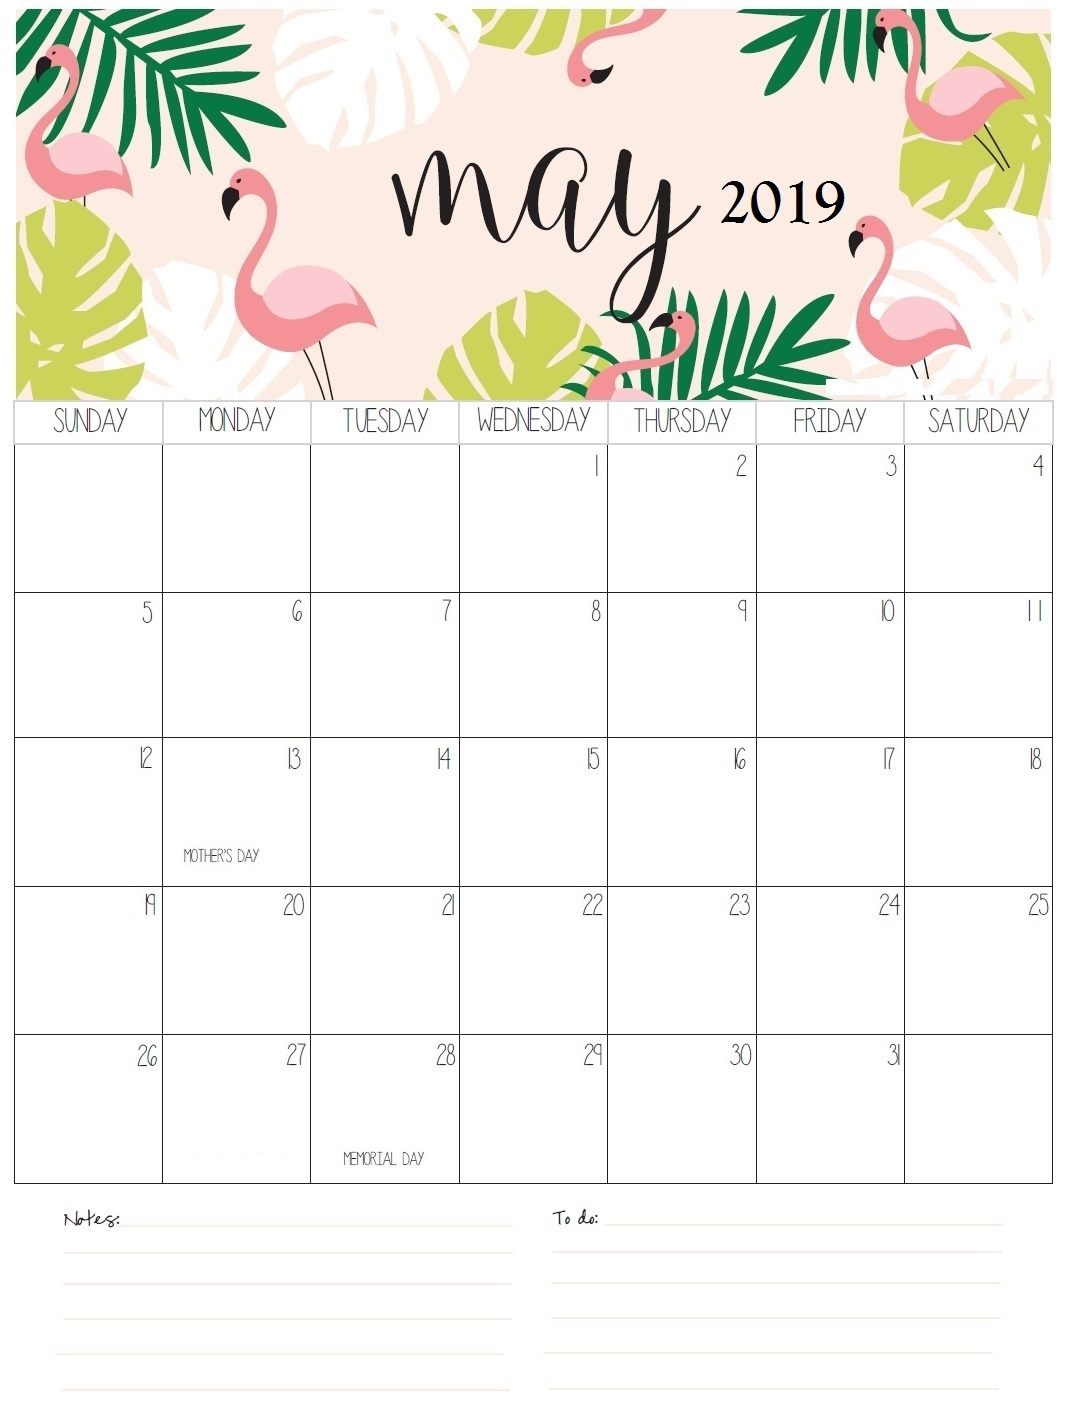 download may 2019 printable calendar template free printable::May 2019 Calendar Example